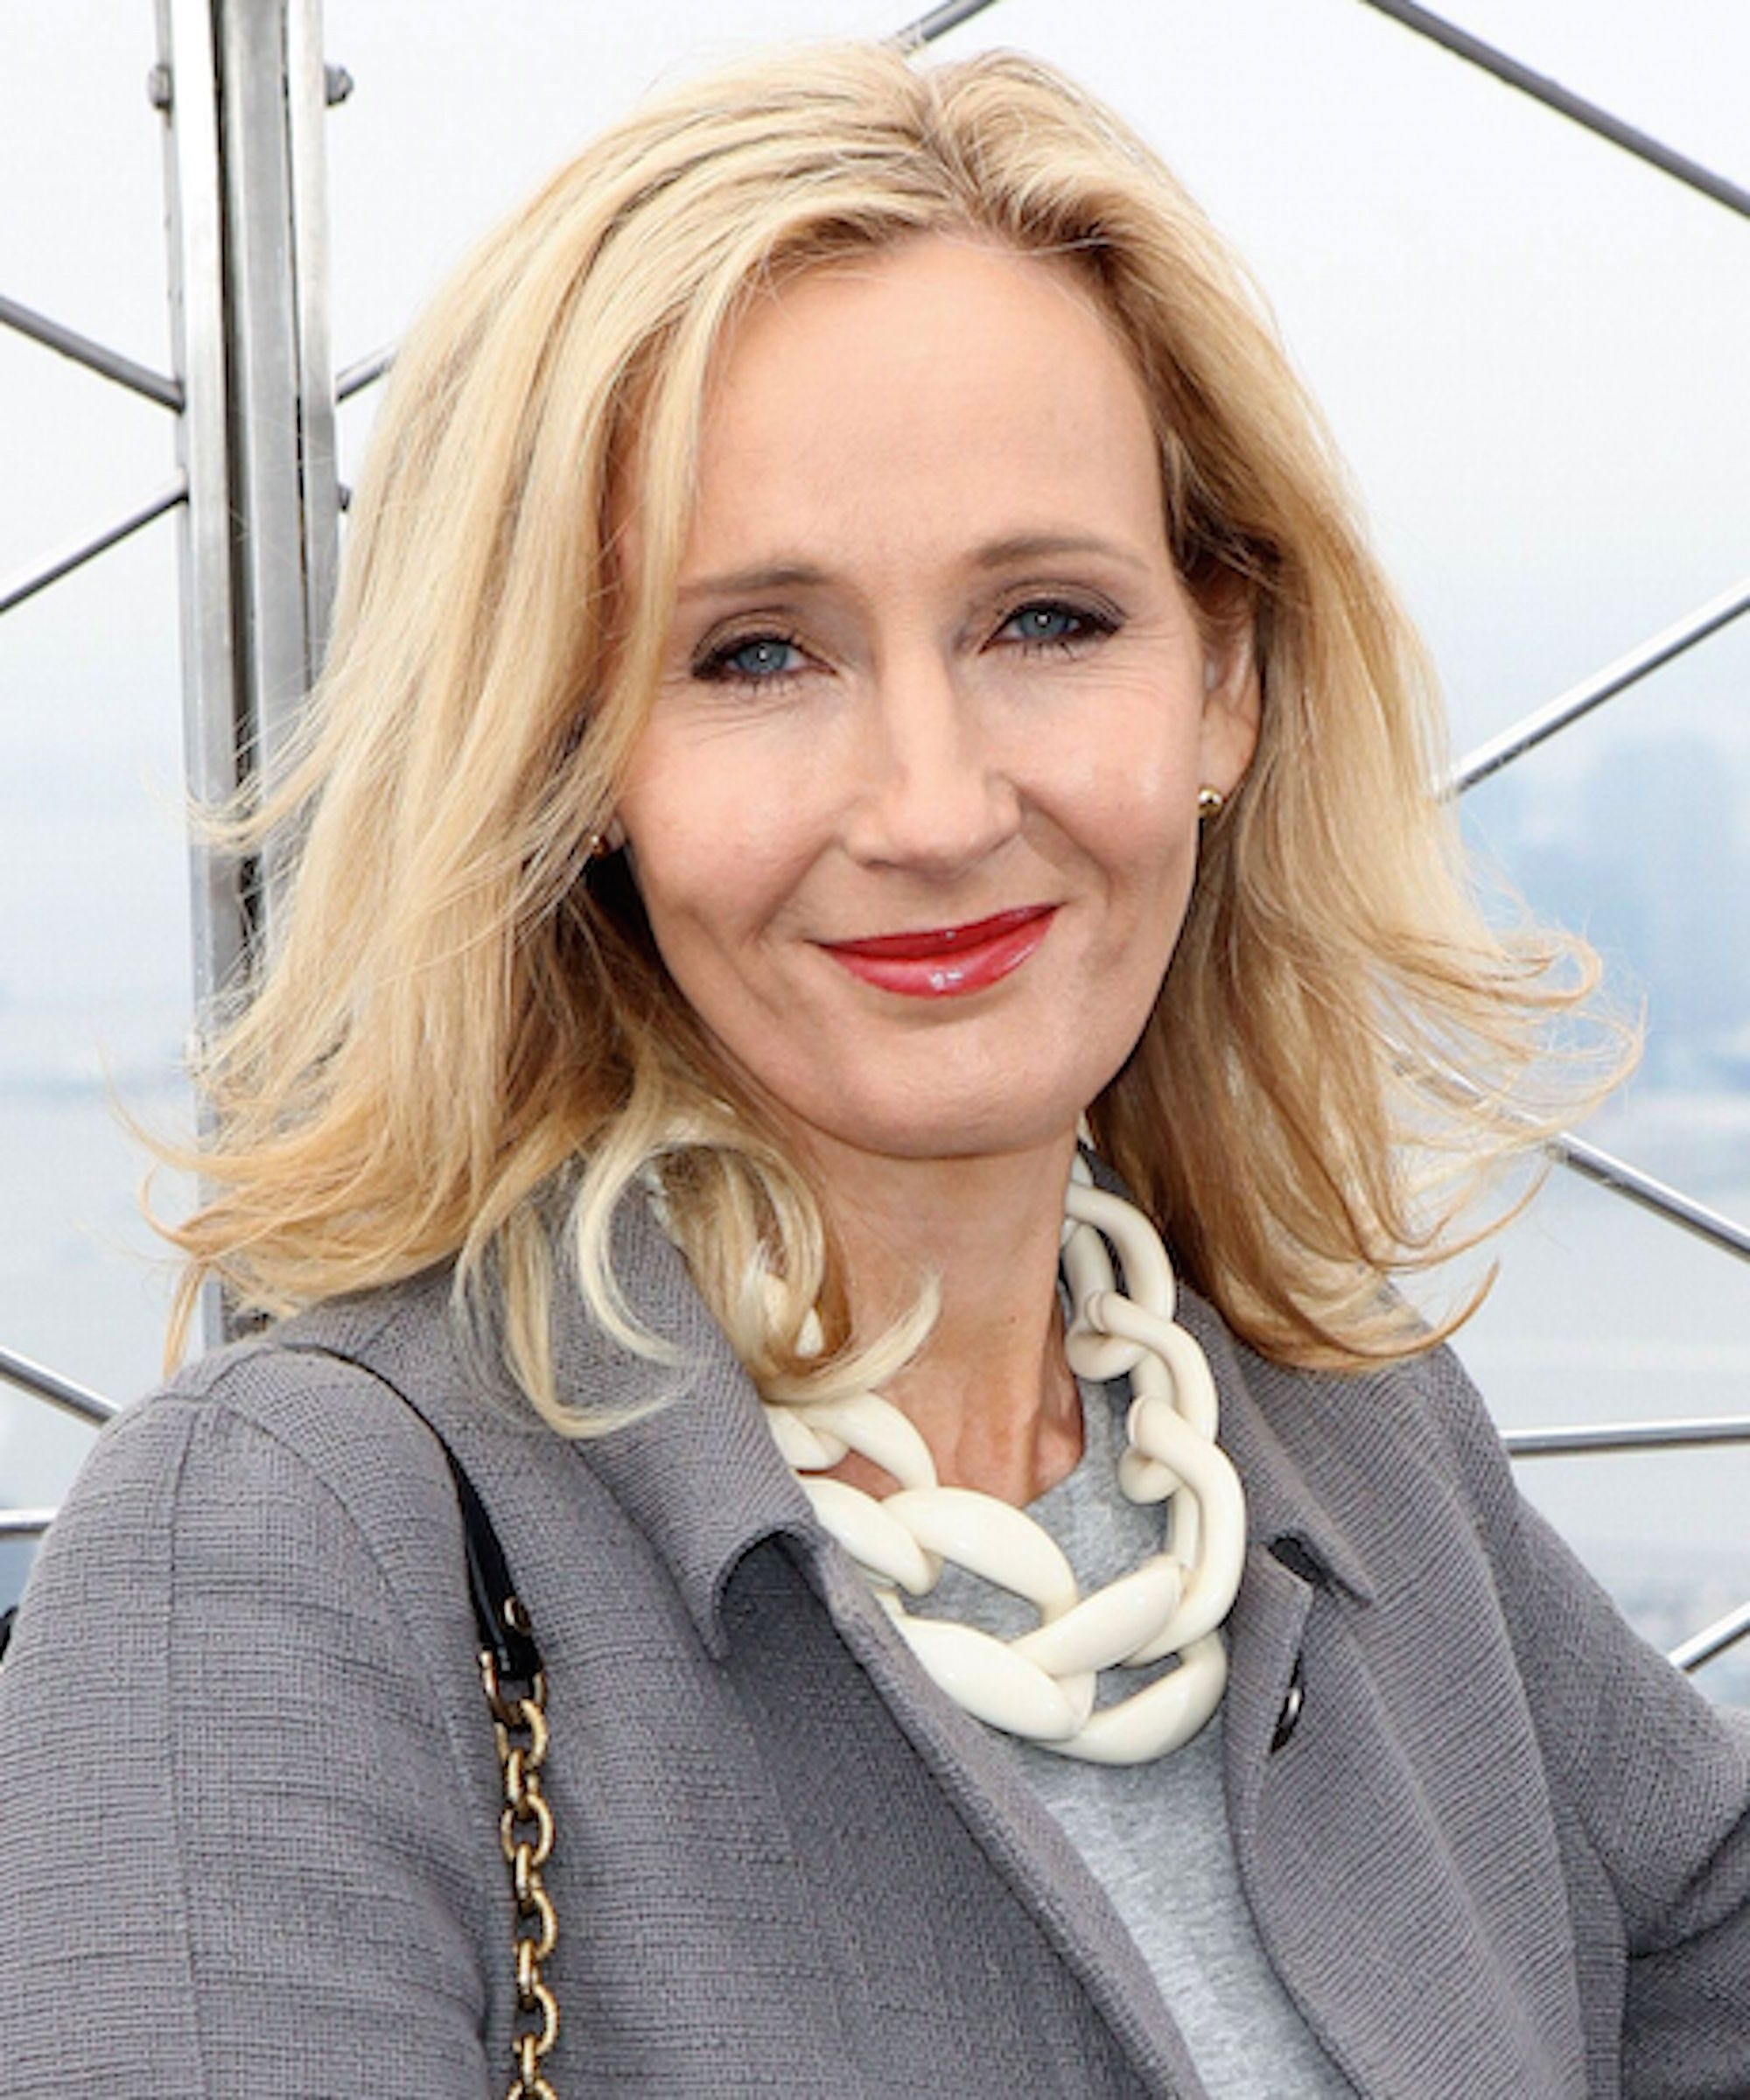 jk rowling shares harry potter rejection letters